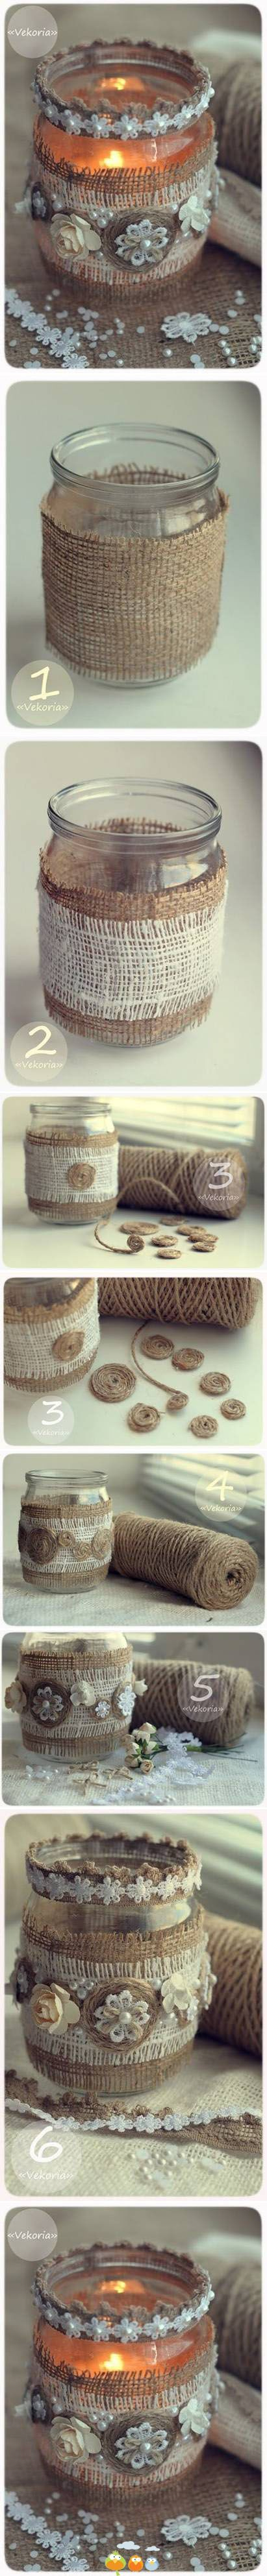 Repurposed jar craft